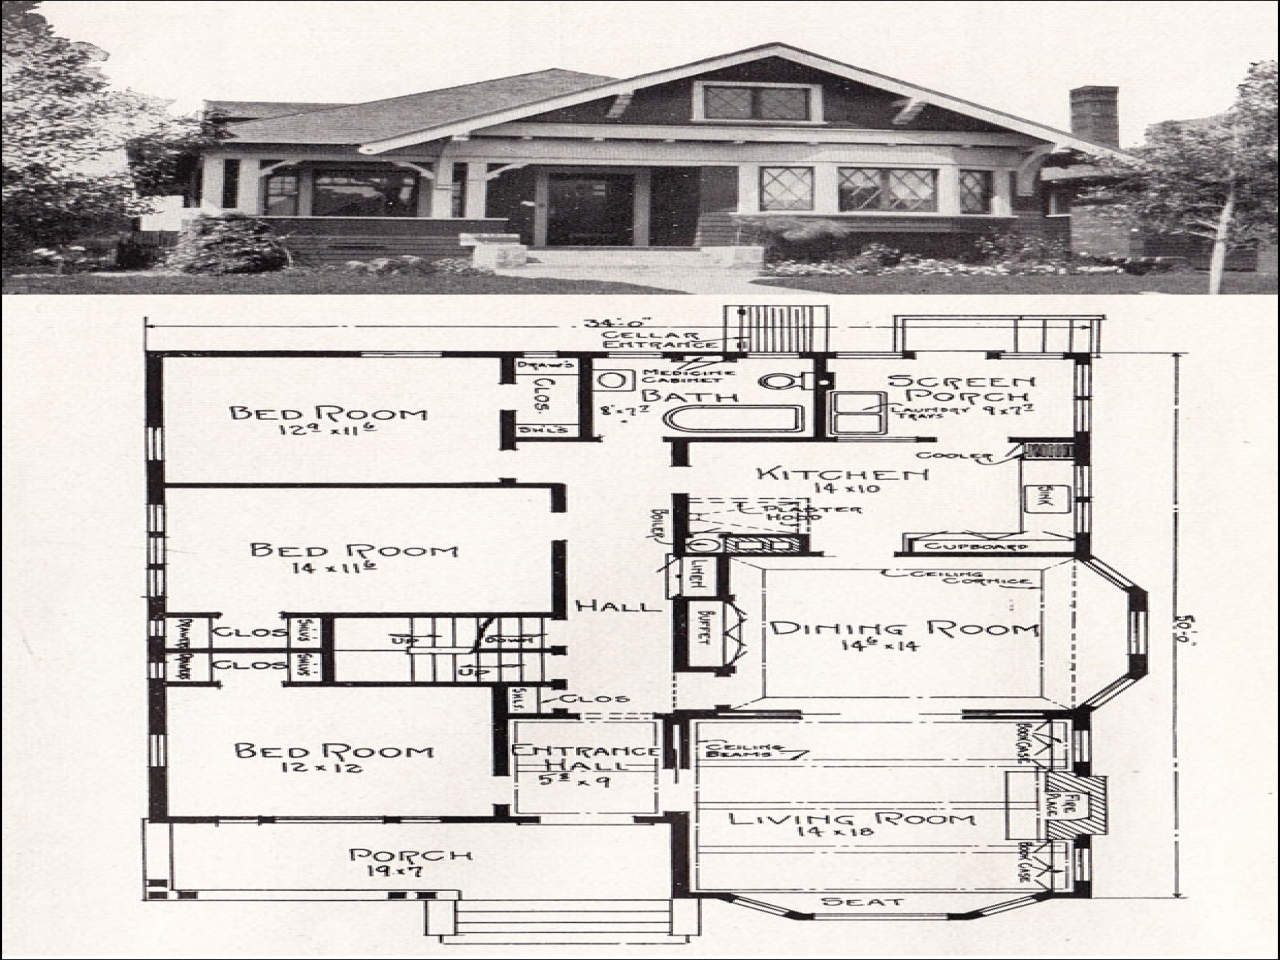 American bungalow floor plans vintage bungalow floor plans Traditional bungalow house plans